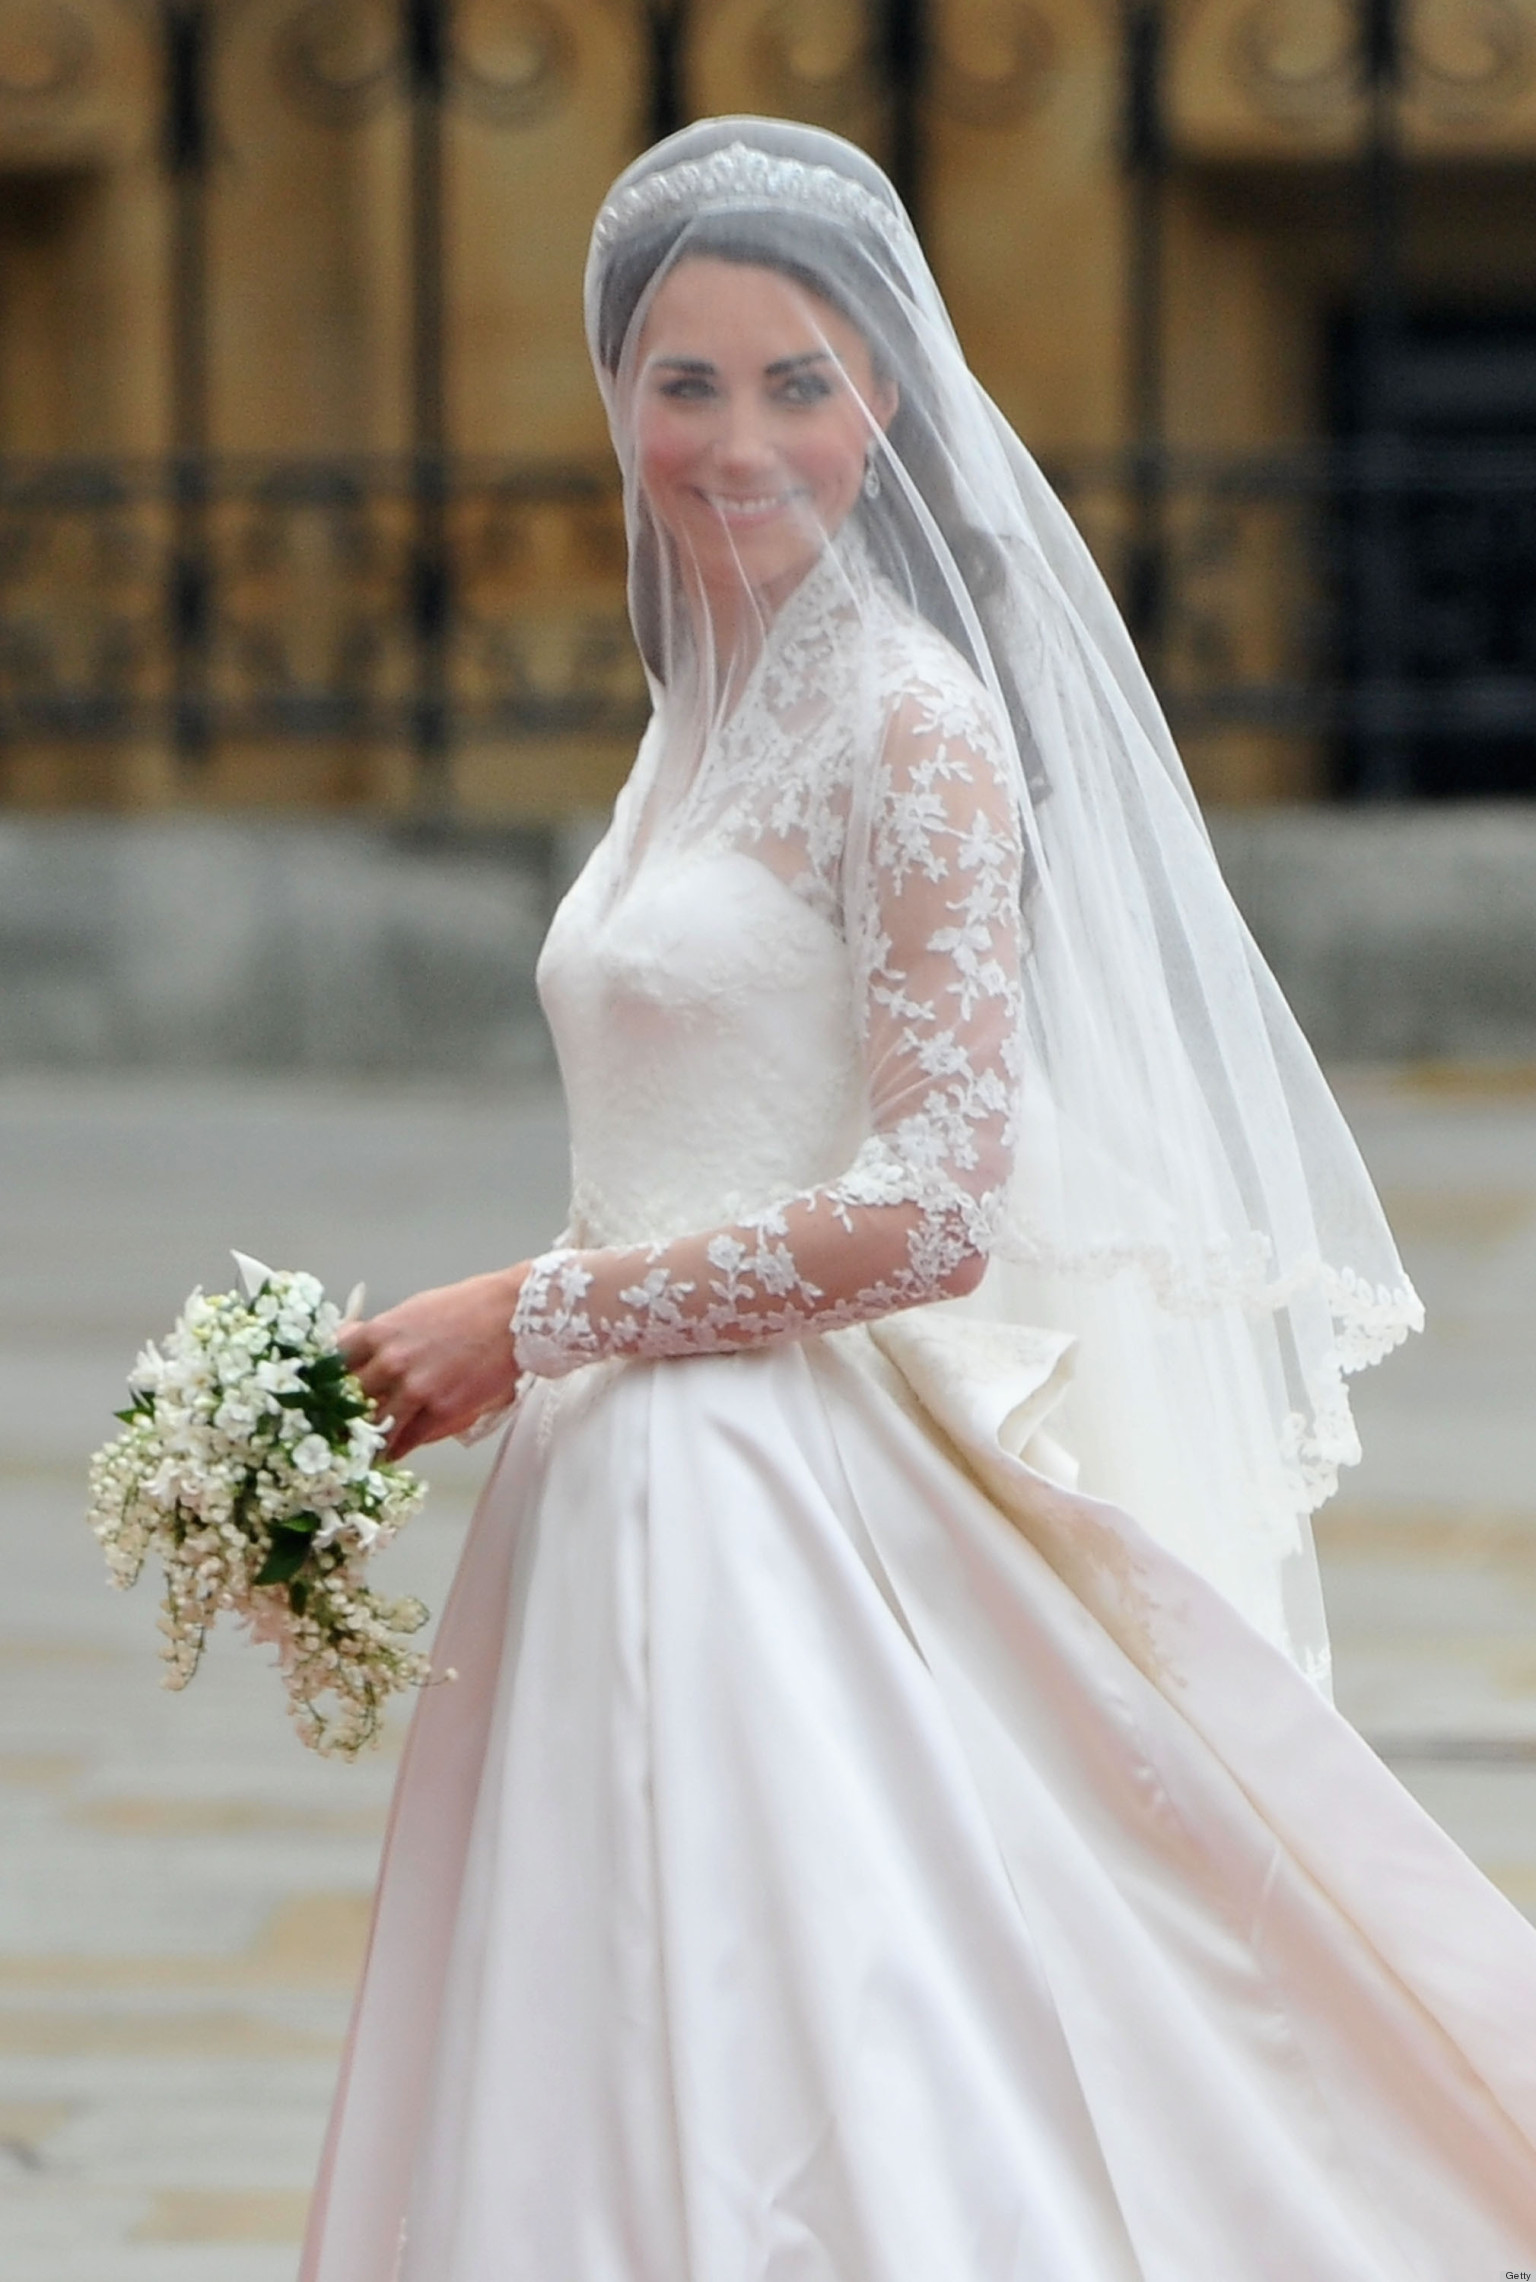 Kate middleton wedding dress causes wikipedia controversy for Kate middleton wedding dress where to buy